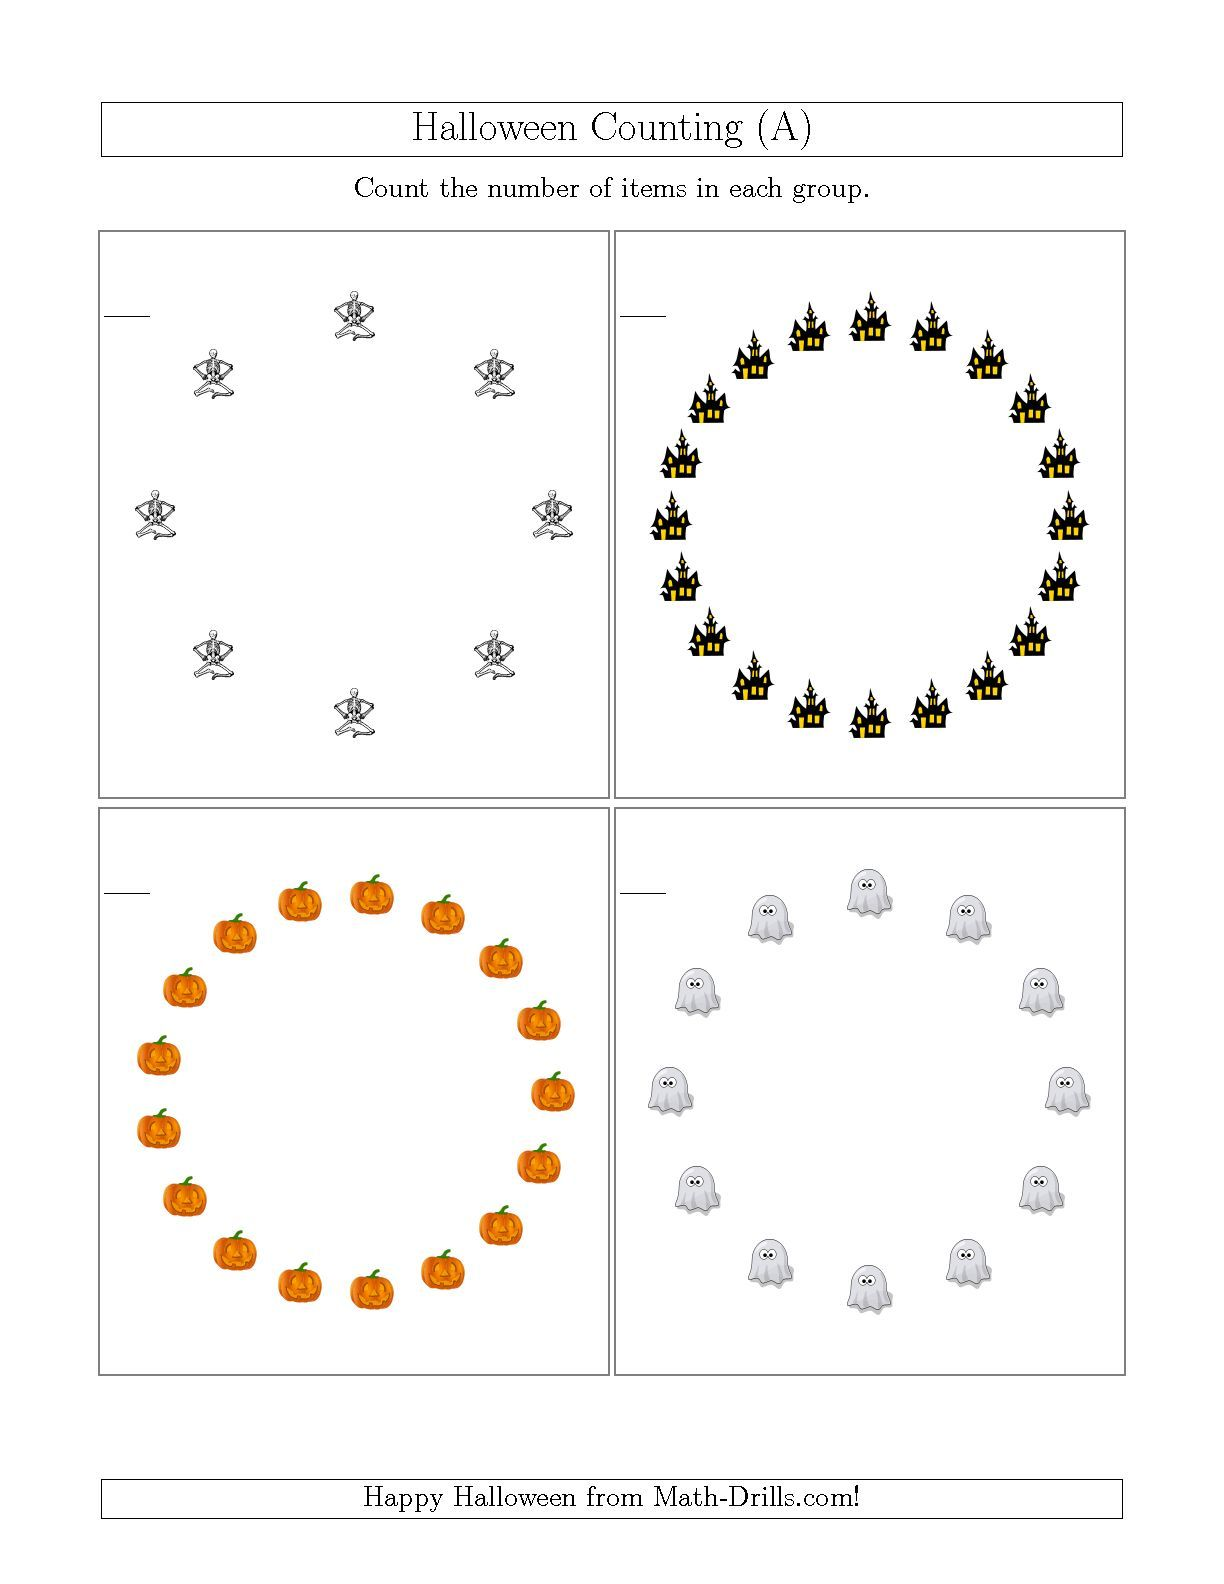 The Counting Halloween Pictures In Circular Patterns A